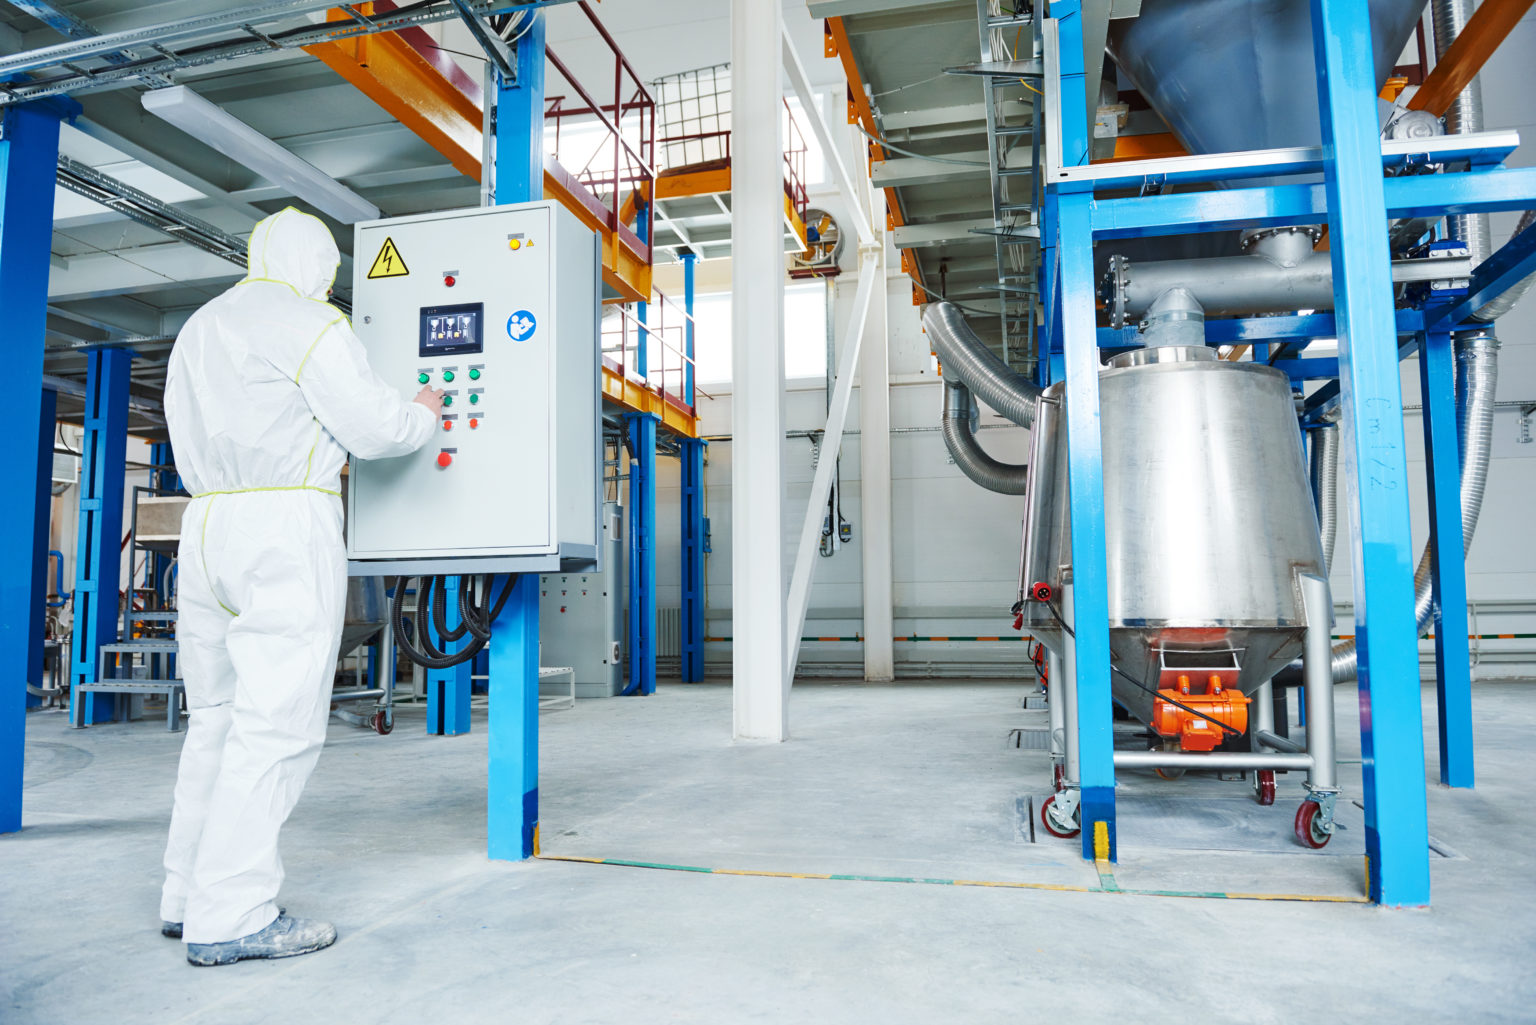 chemical industry worker operating equipment at technological industrial factory